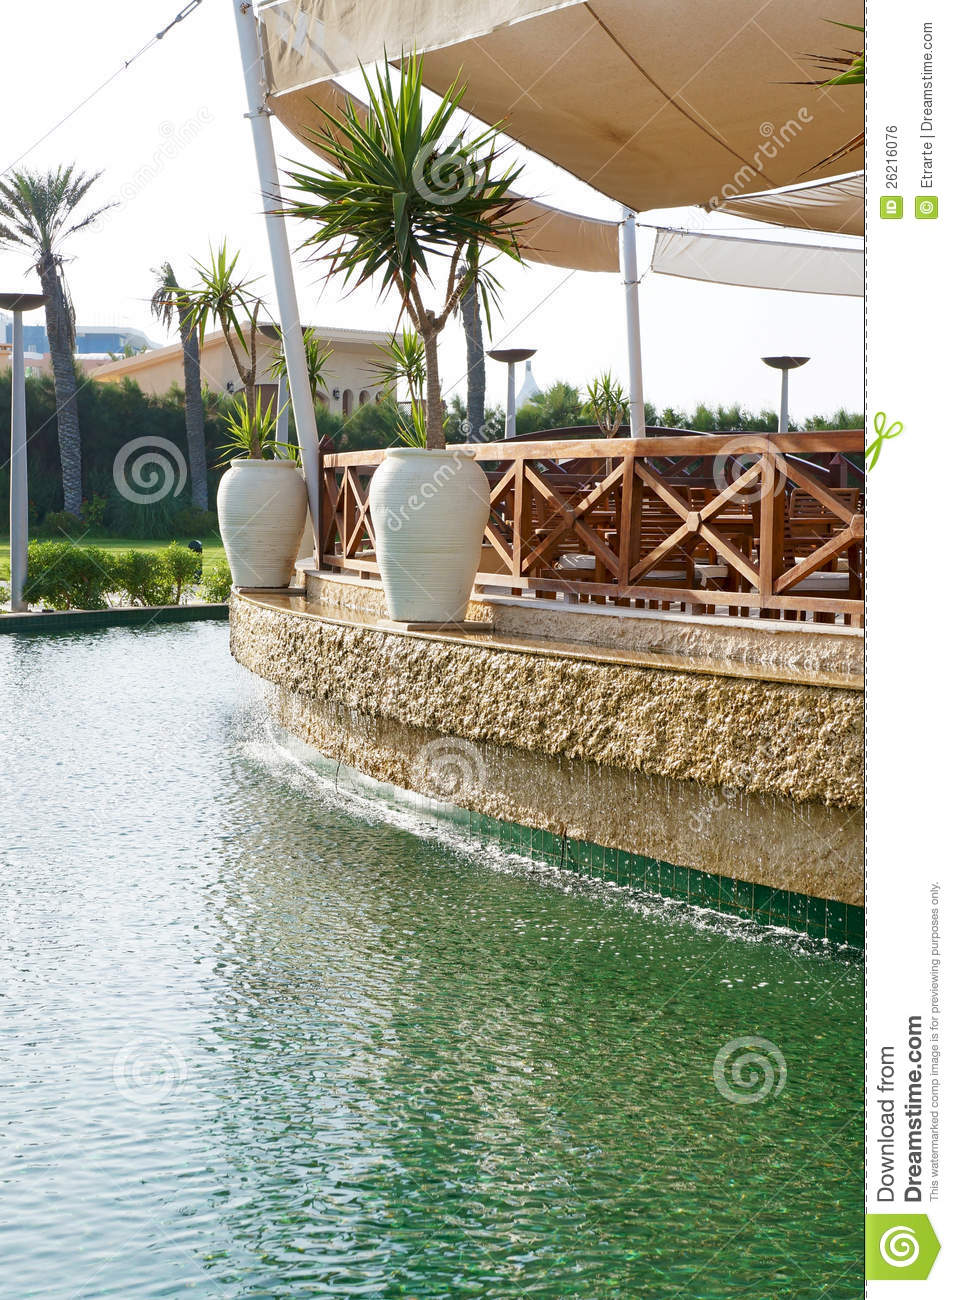 terrace over the water royalty free stock image image On terrace on the water